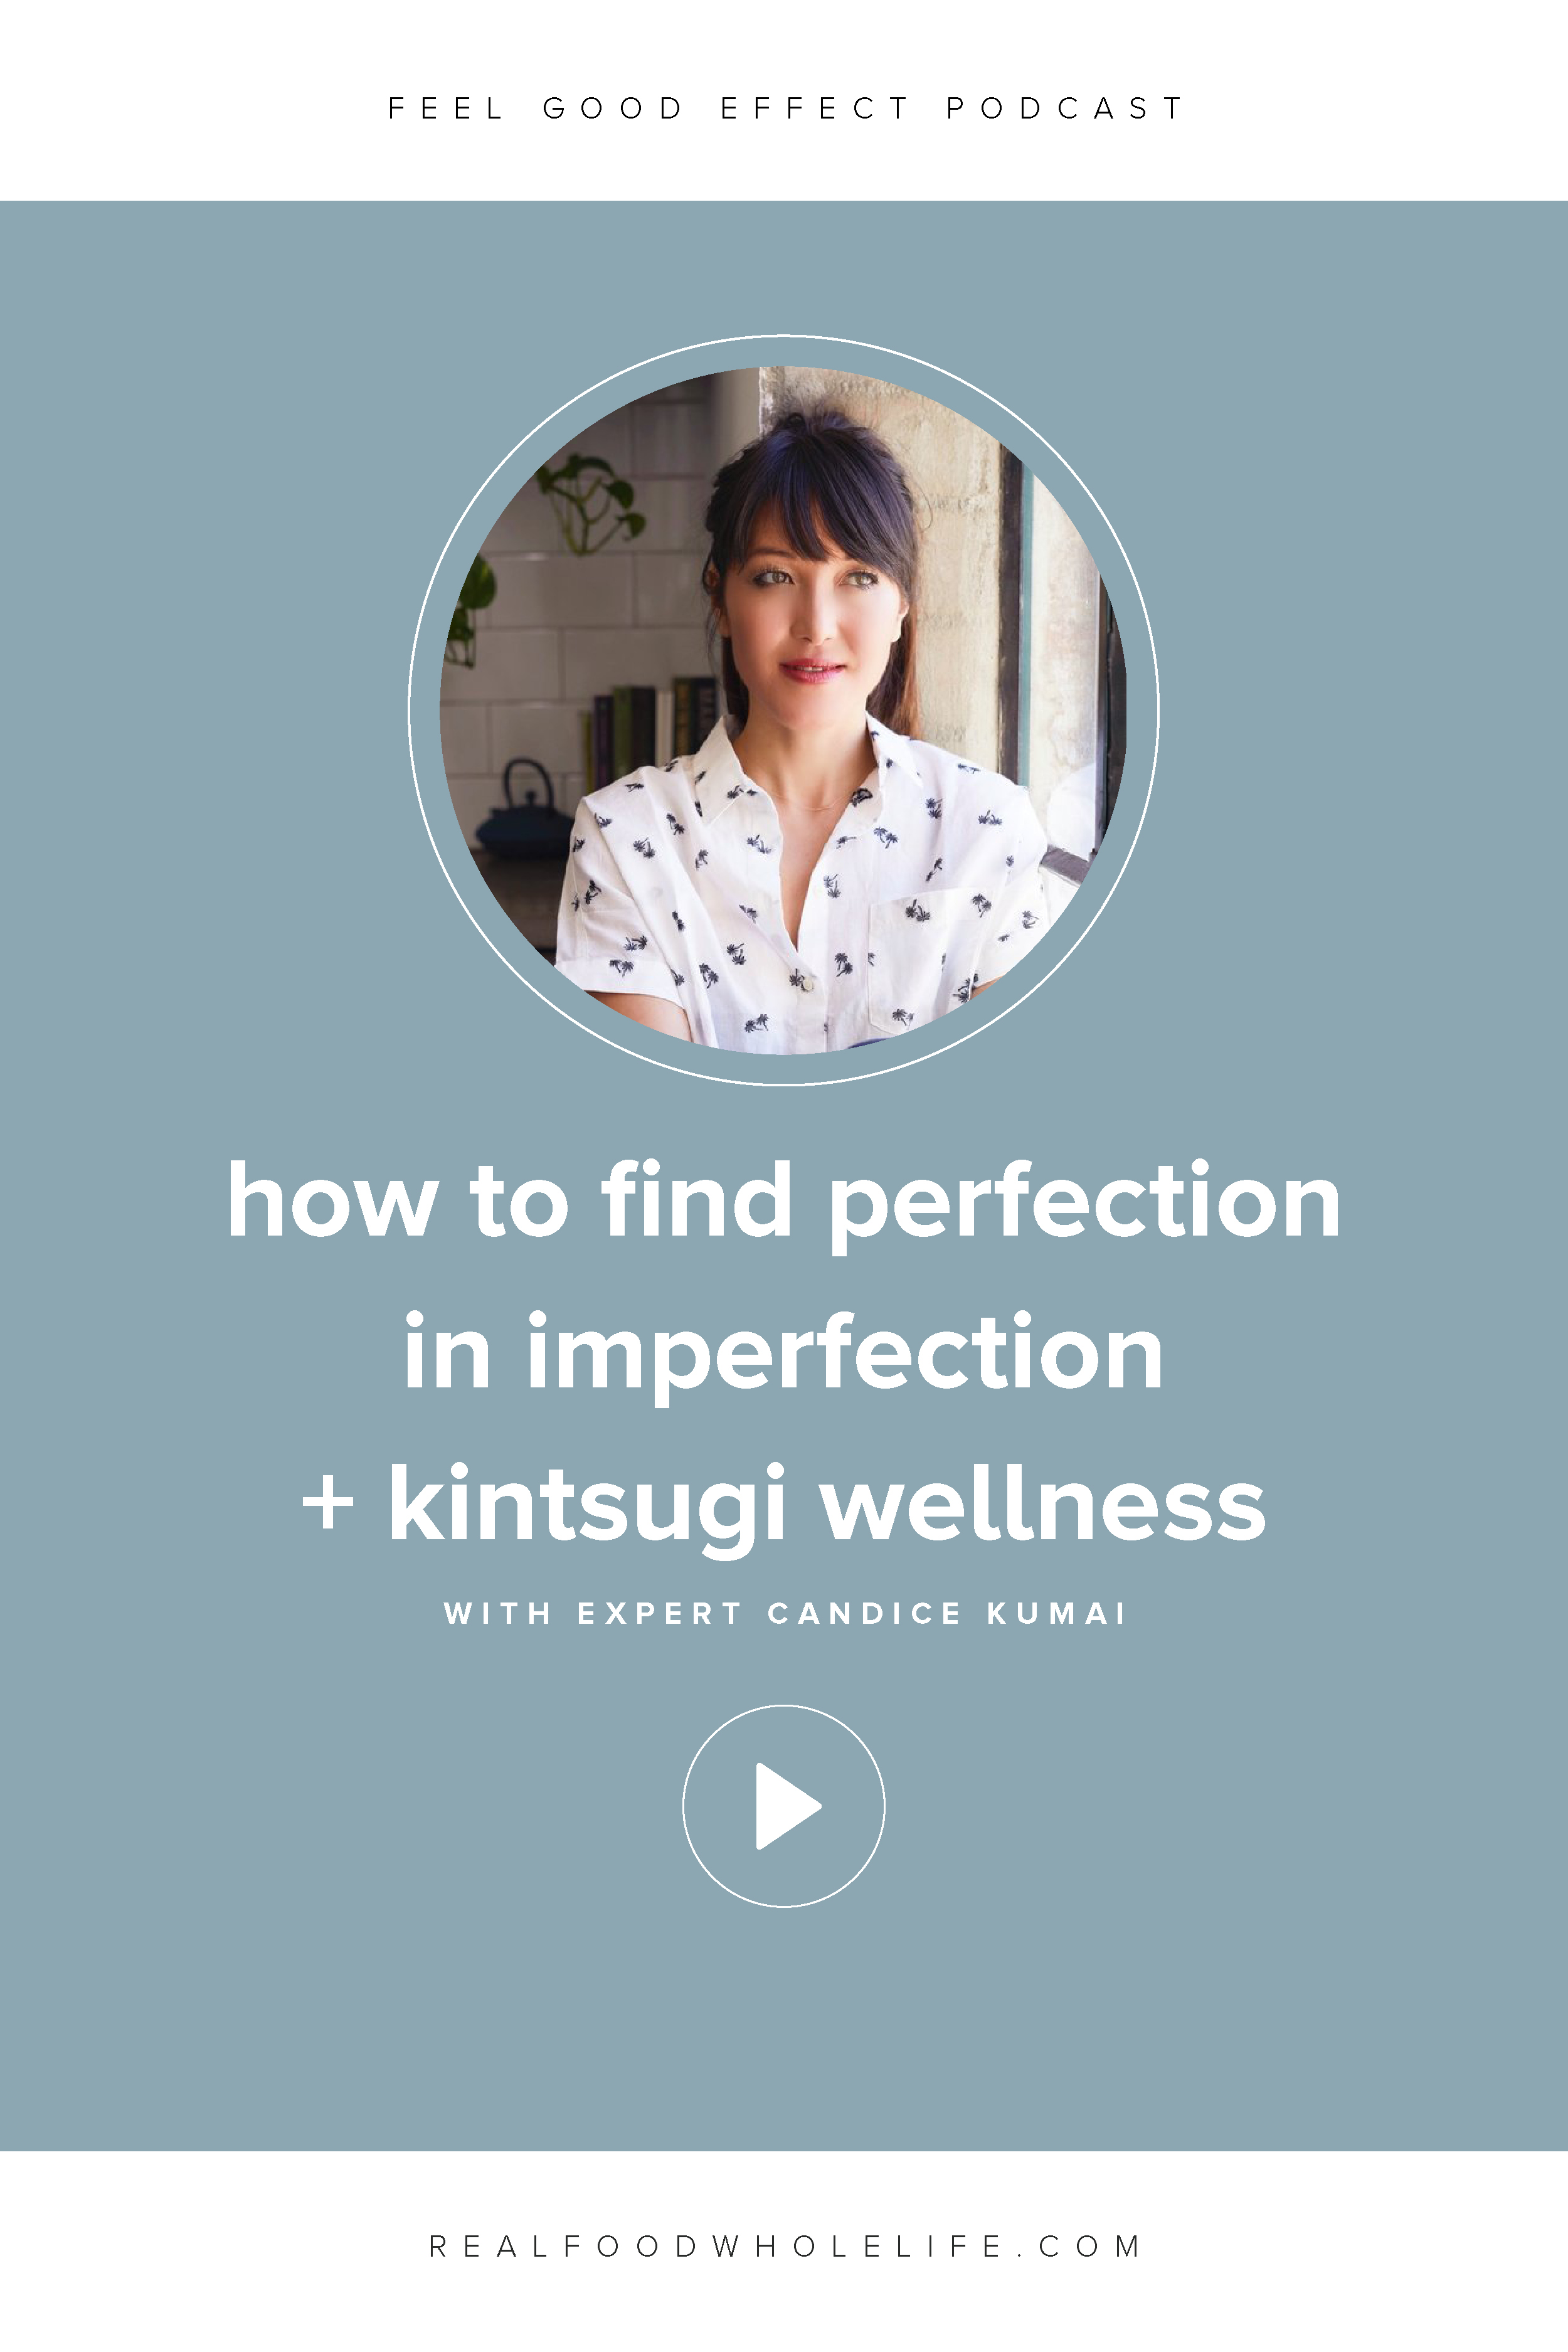 How to Find Perfection in Imperfection + Kintsugi Wellness With Expert Candice Kumai